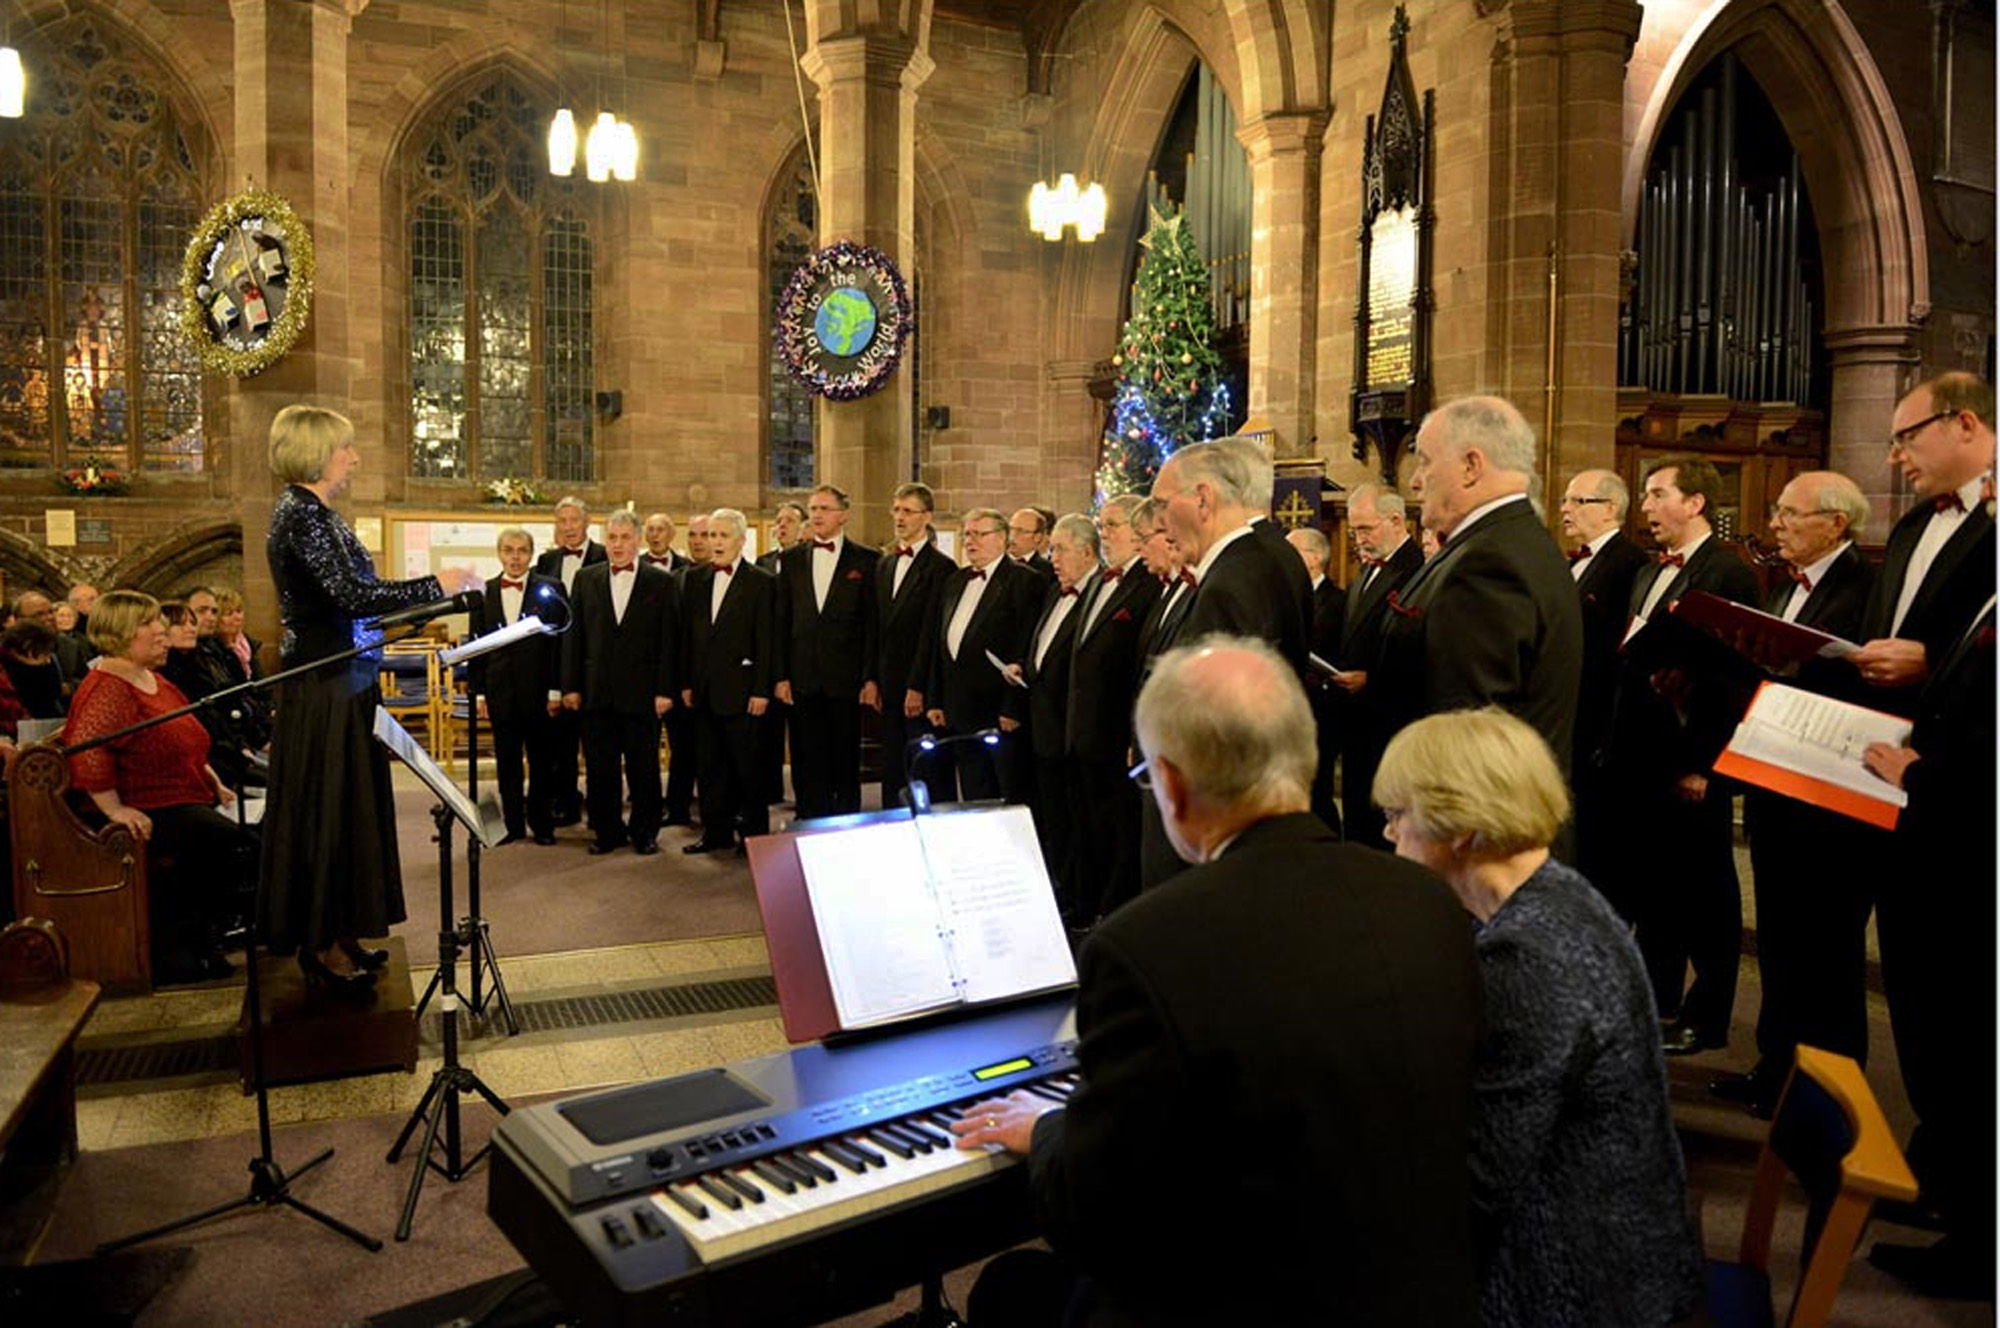 Newport (Salop) & District, accompanied by Michael Ward & Jo Ward, performing under the direction of Vivian Redfern at St Nicholas Church, Newport at our 2013 Christmas Concert.